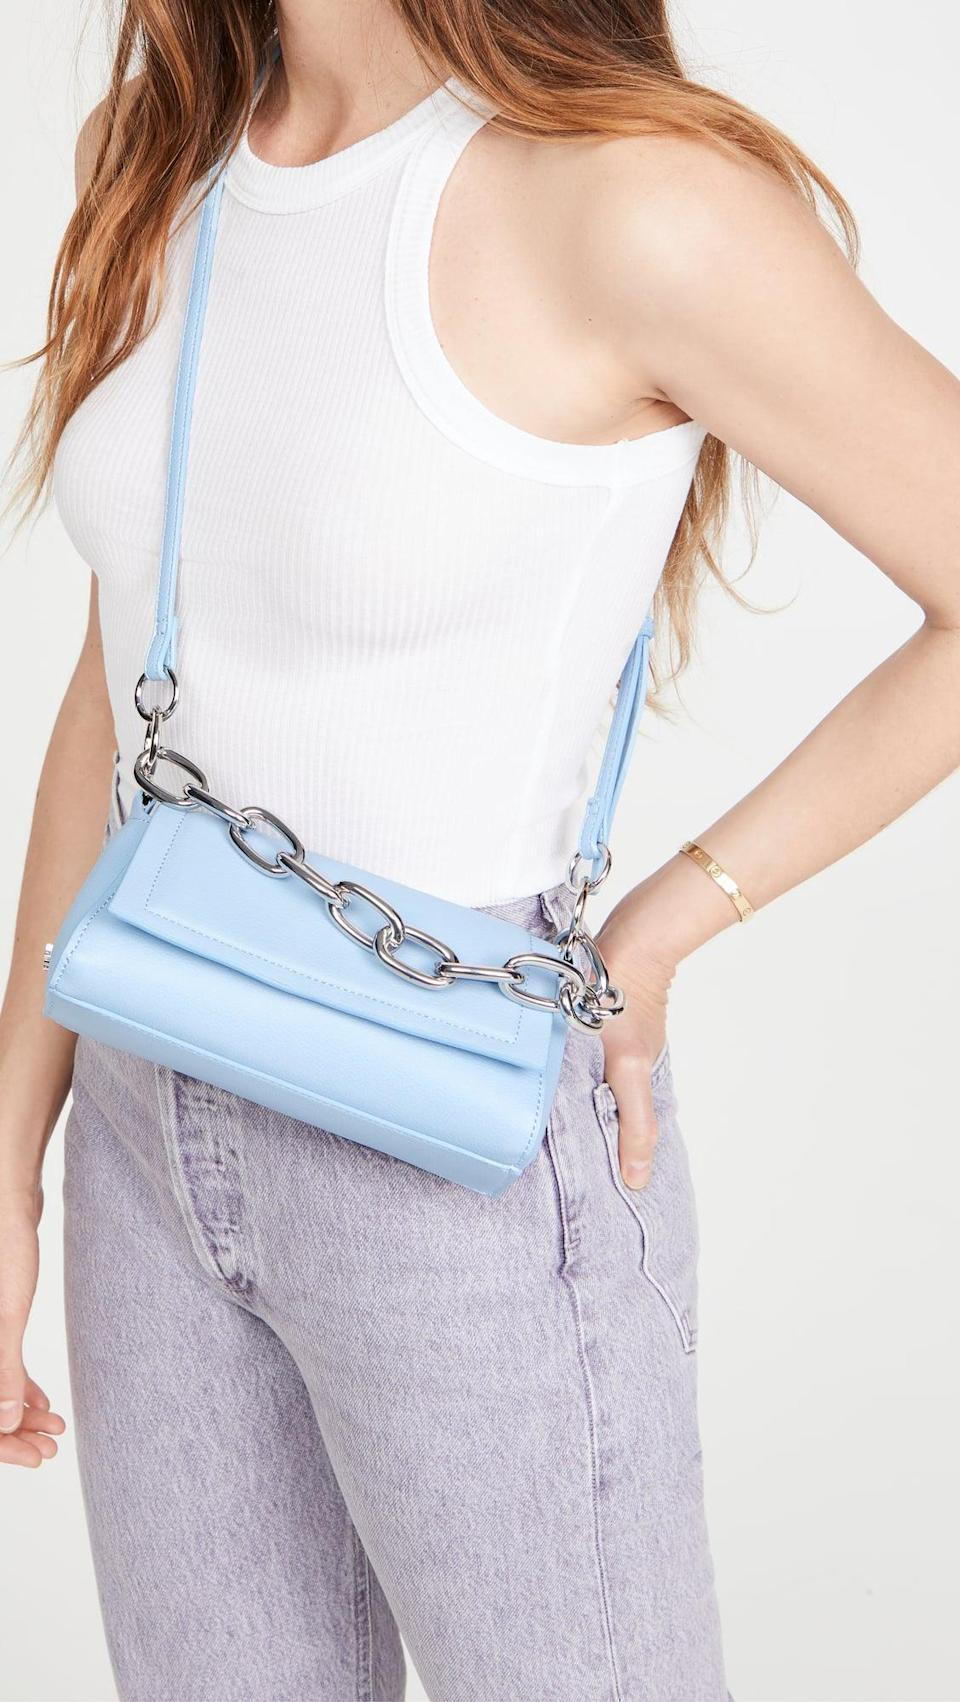 <p>This <span>House of Want H.O.W. We Play Crossbody Bag</span> ($39, originally $78) is so fun. We would never guess that it's under $50!</p>